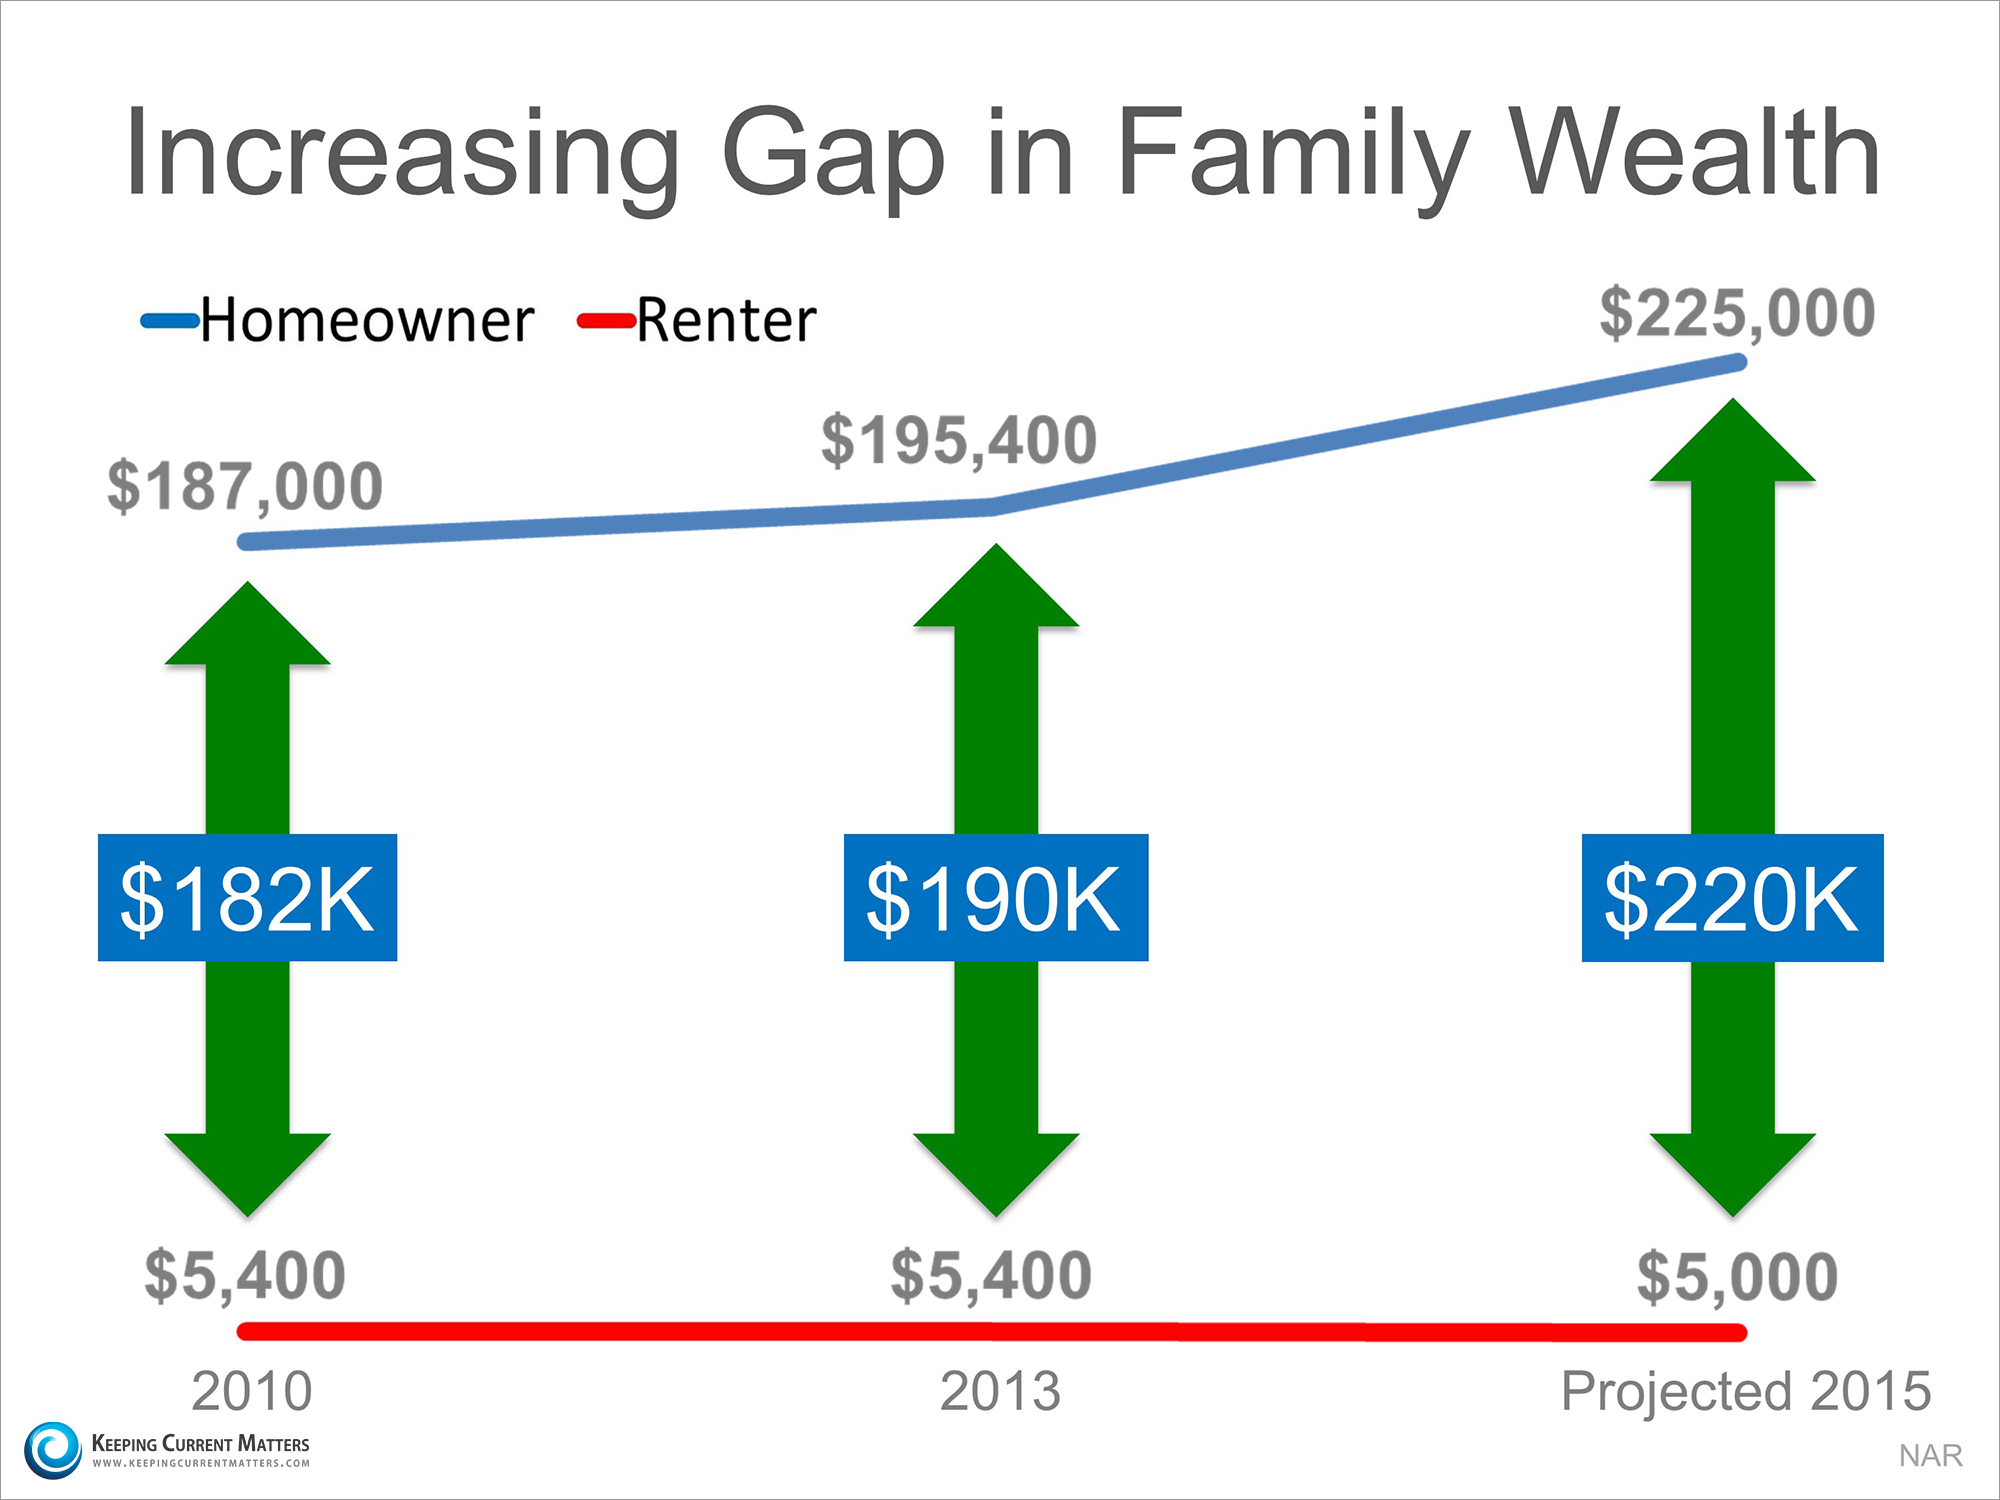 Increasing Gap in Family Wealth | Keeping Current Matters